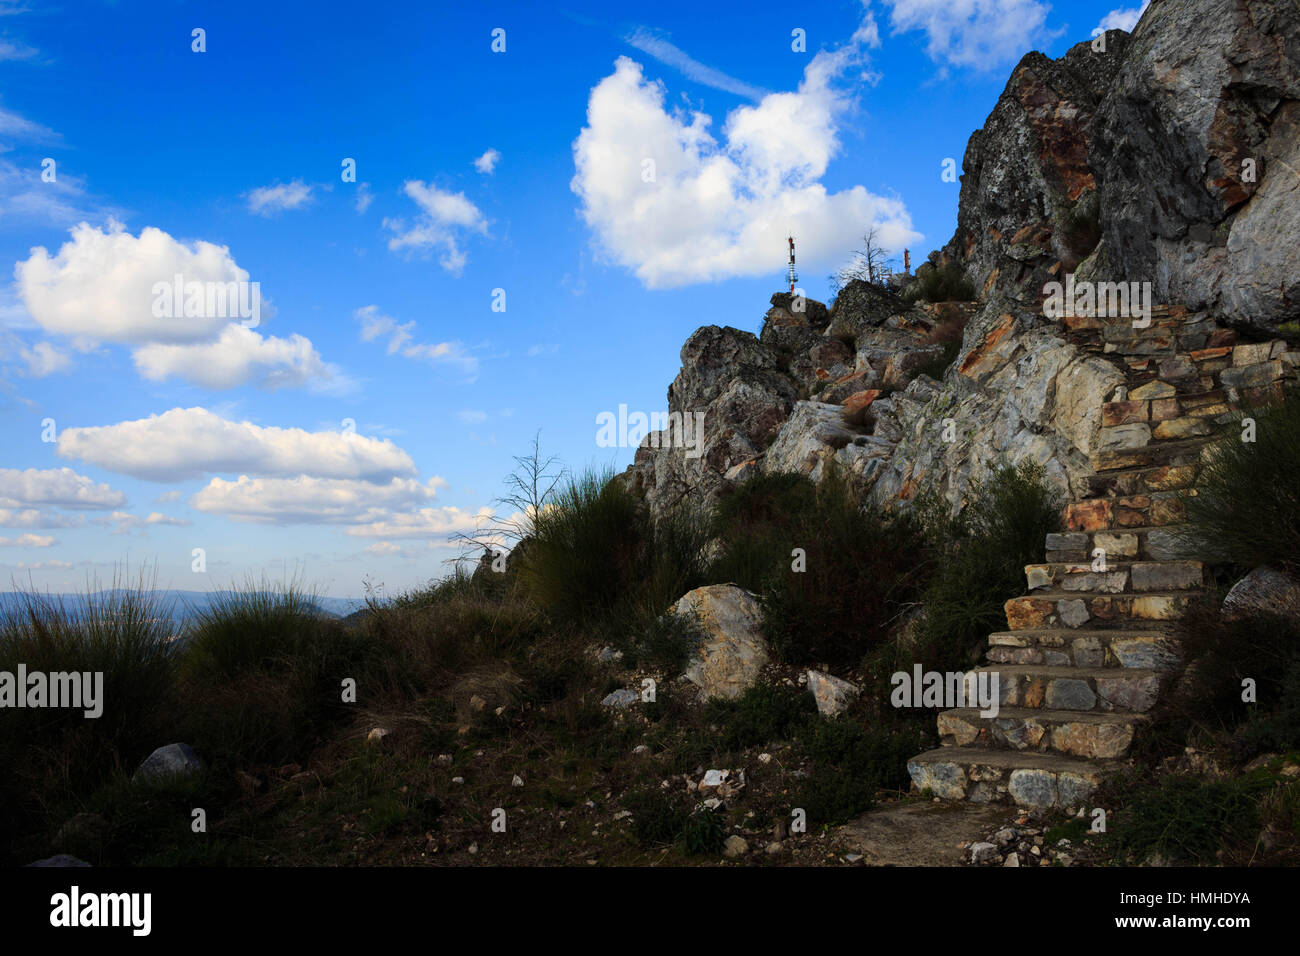 Stairs on a mountain top - Stock Image